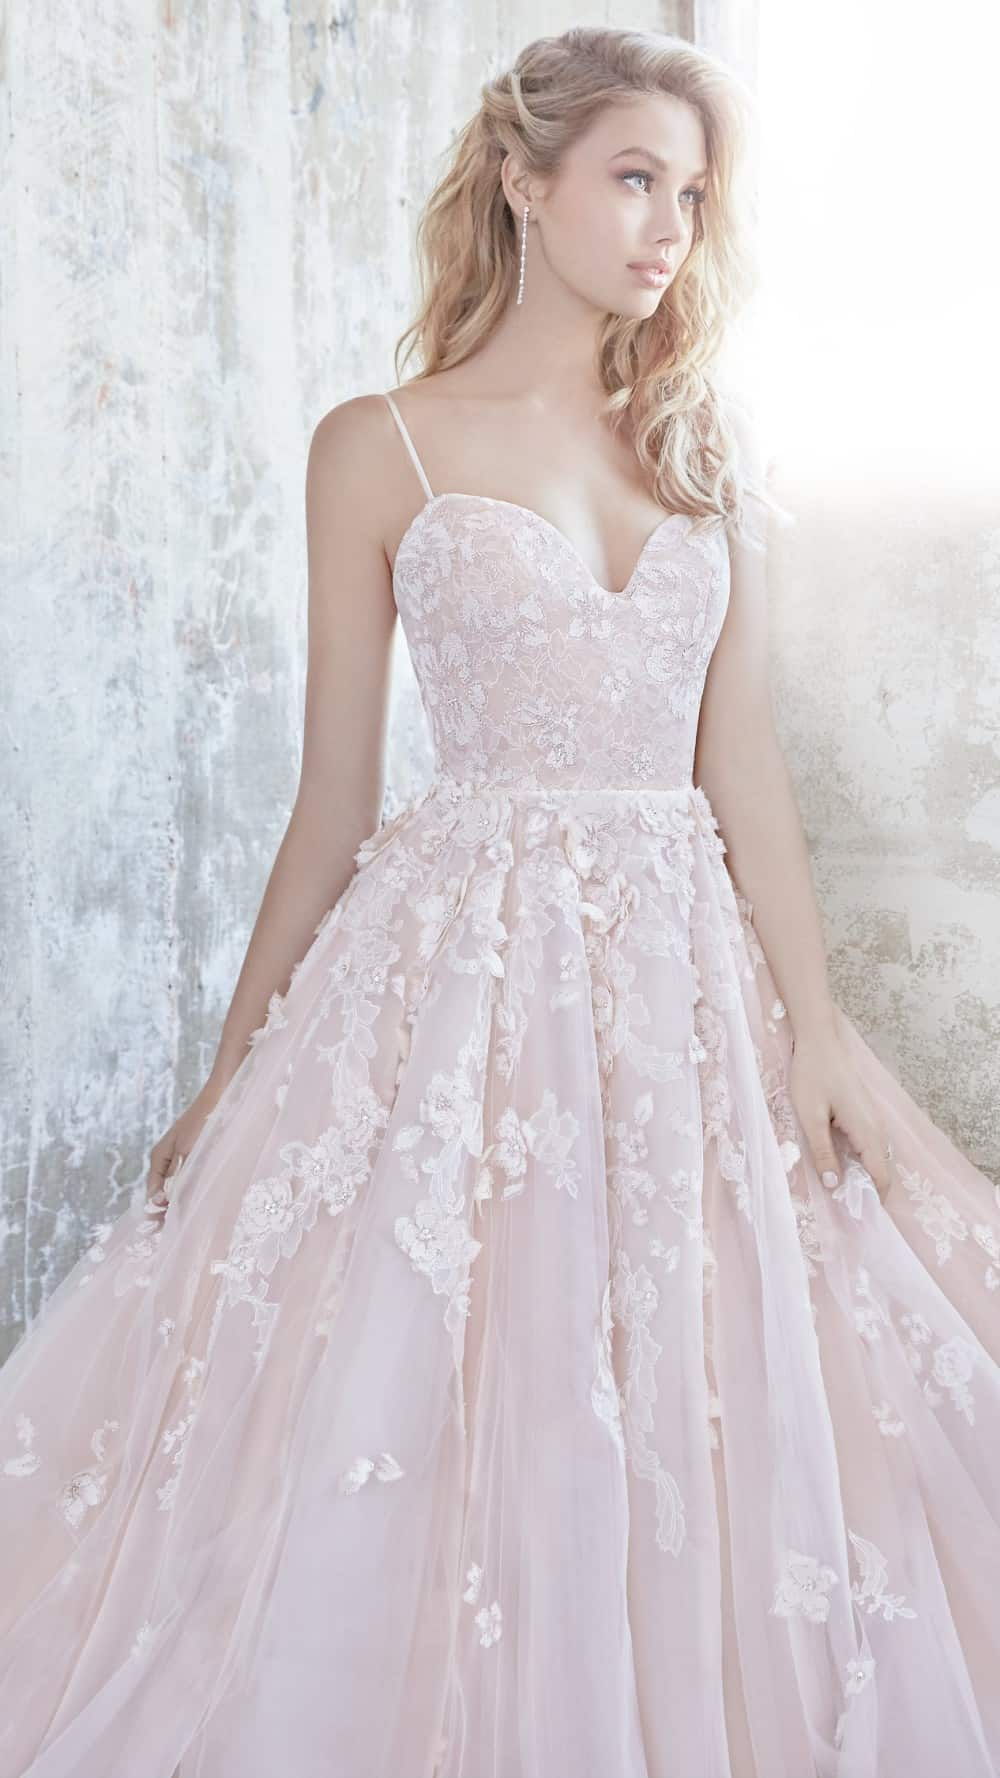 Blush wedding dress 2018 Arden by Hayley Paige